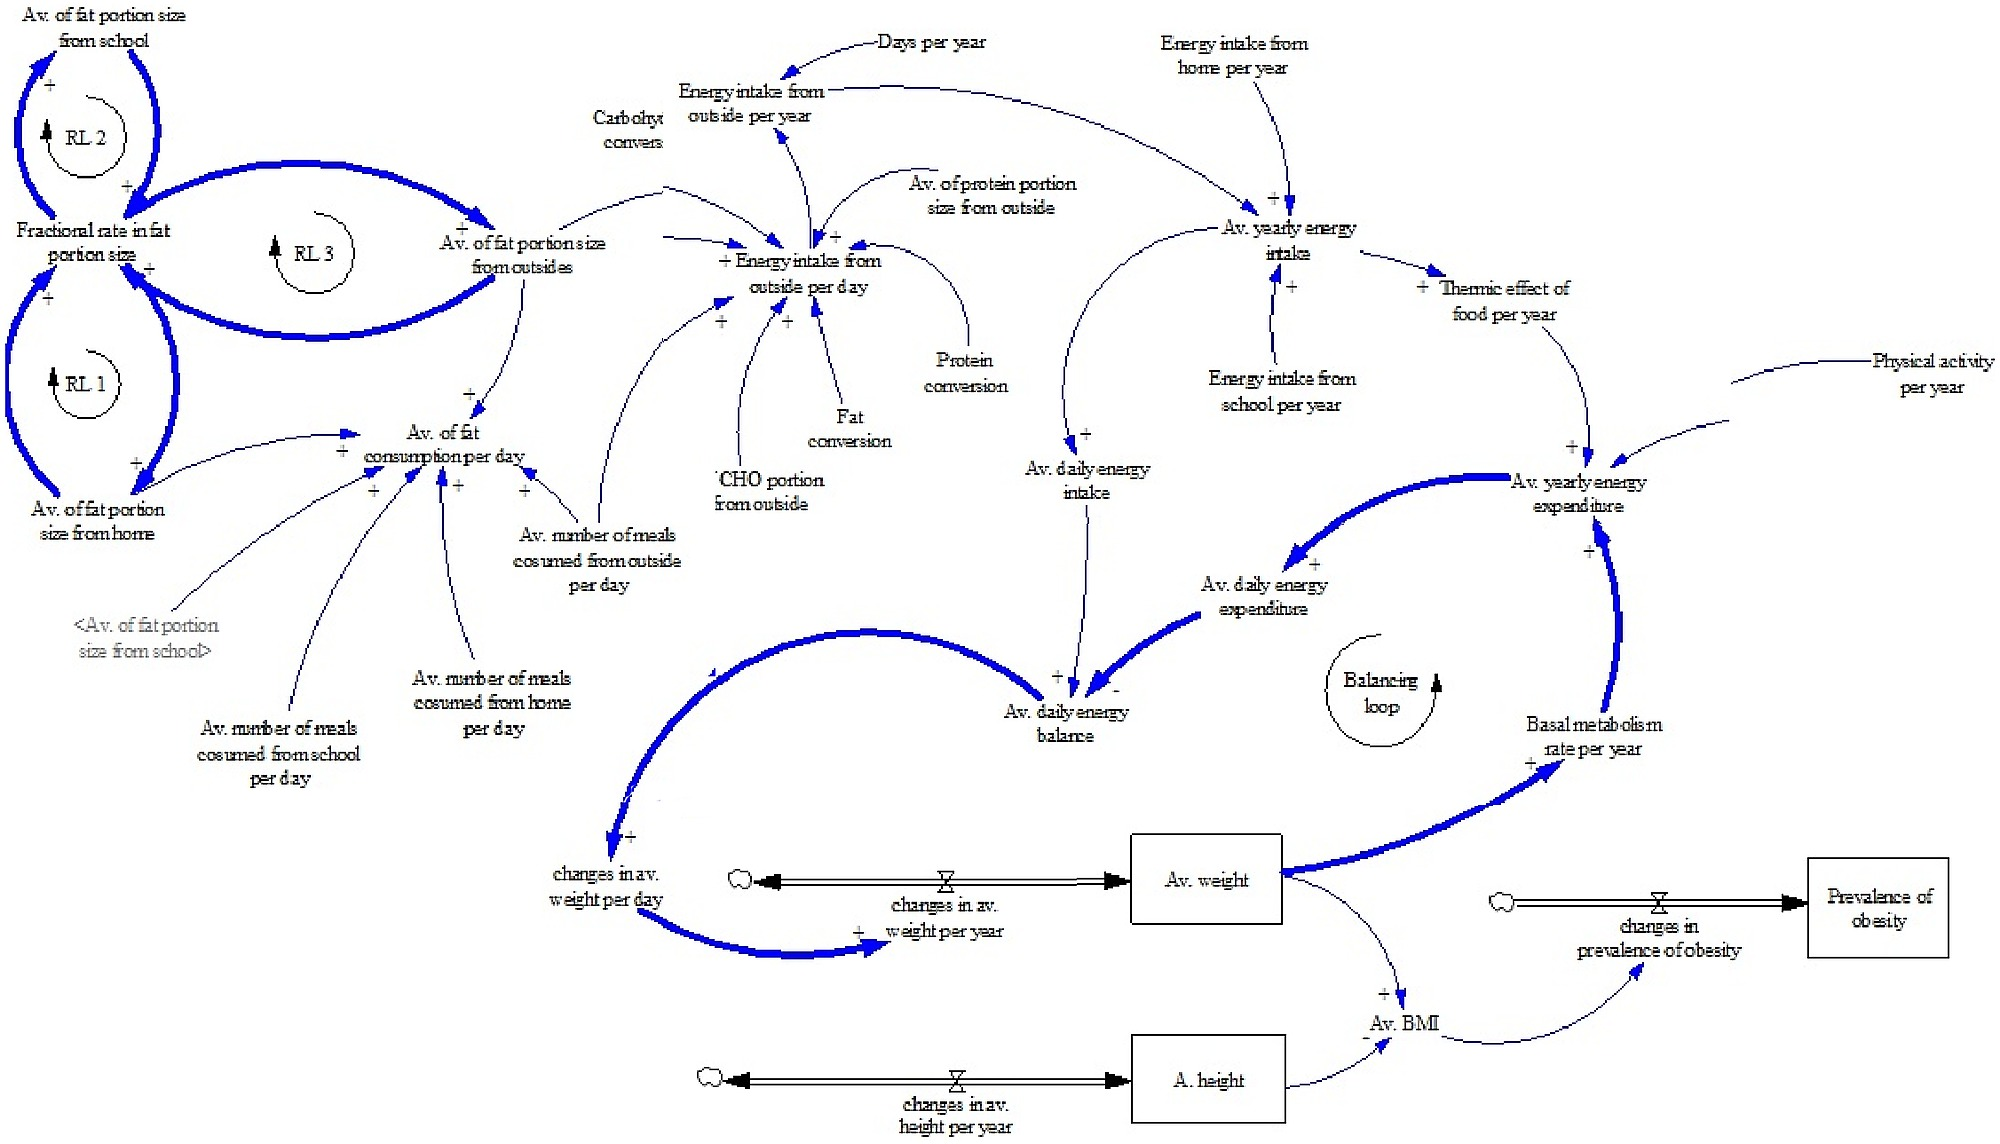 hight resolution of causal loop diagram of the interaction of eating and physical activity behavior on weight and obesity